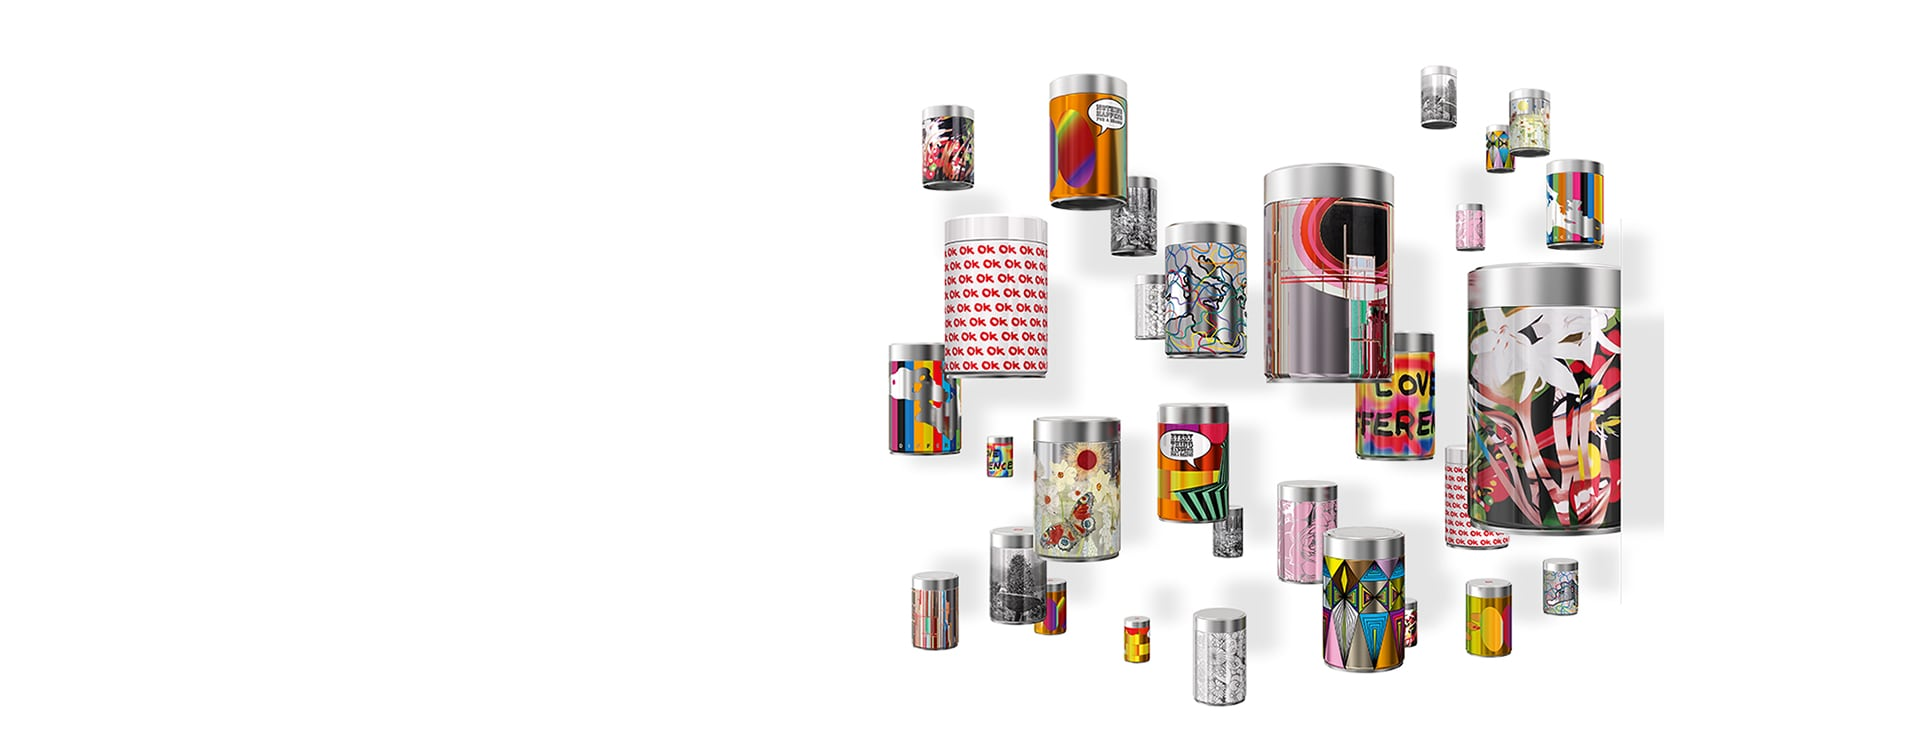 illy art collection barattoli